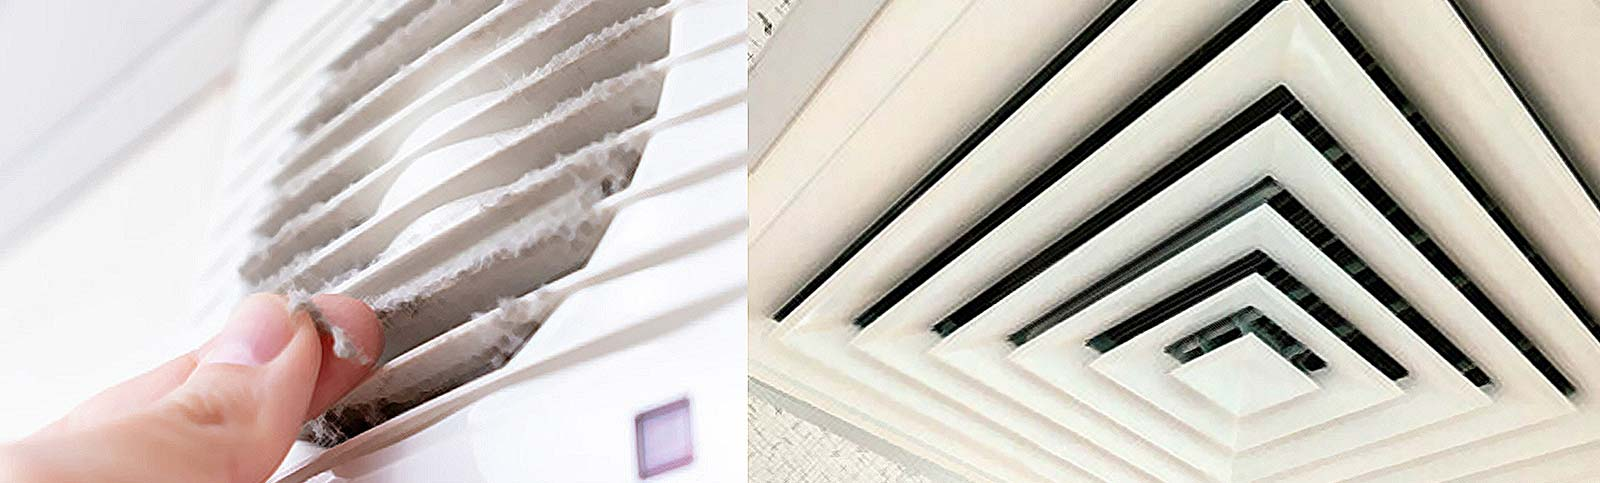 Duct Cleaning for Clean, Fresh Air in Your Home